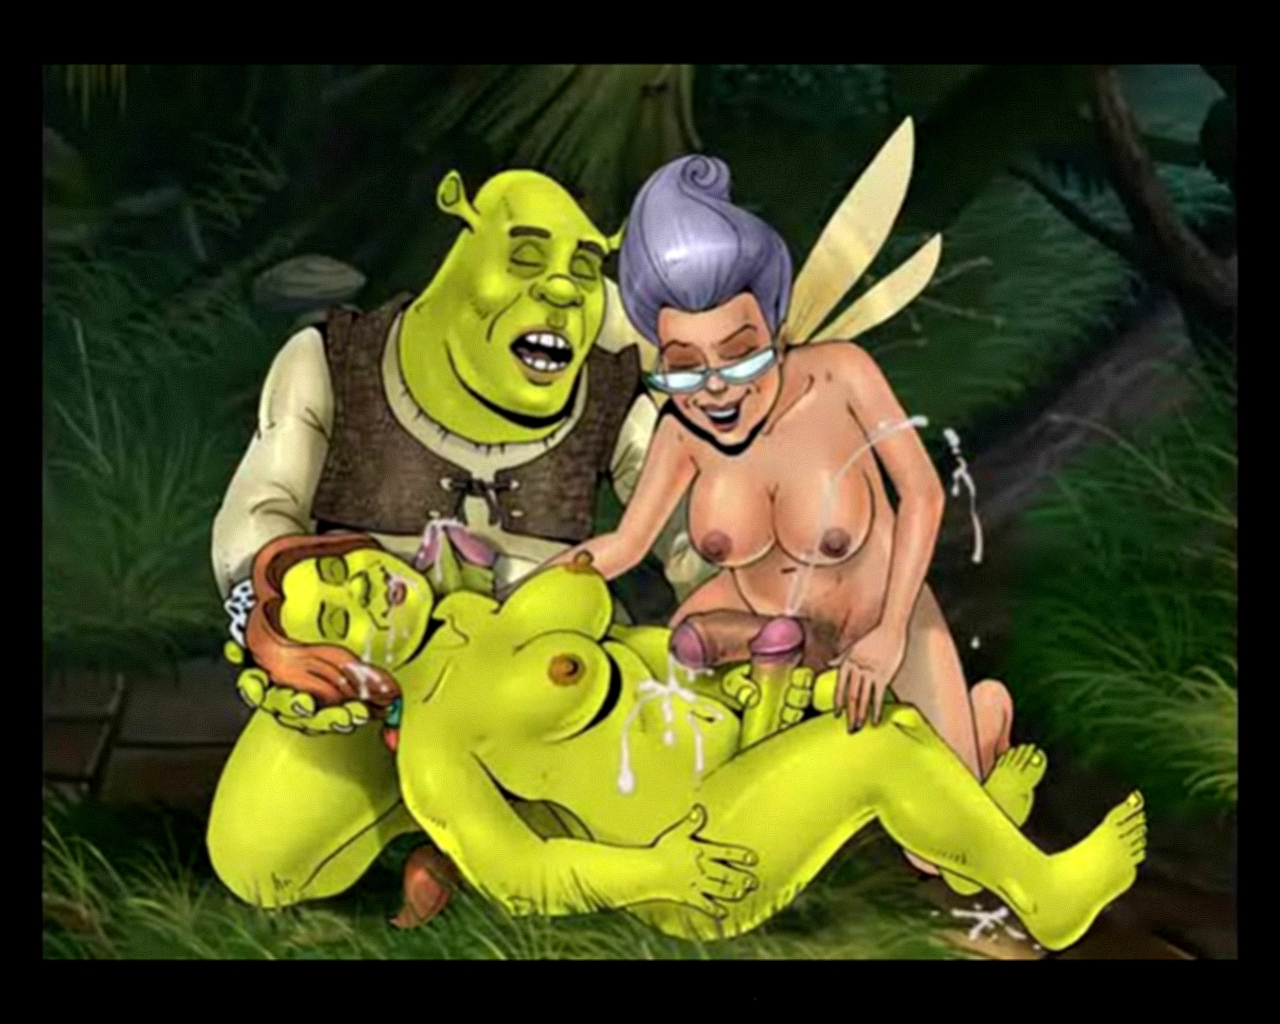 Video porno de sherek con fio nudes films